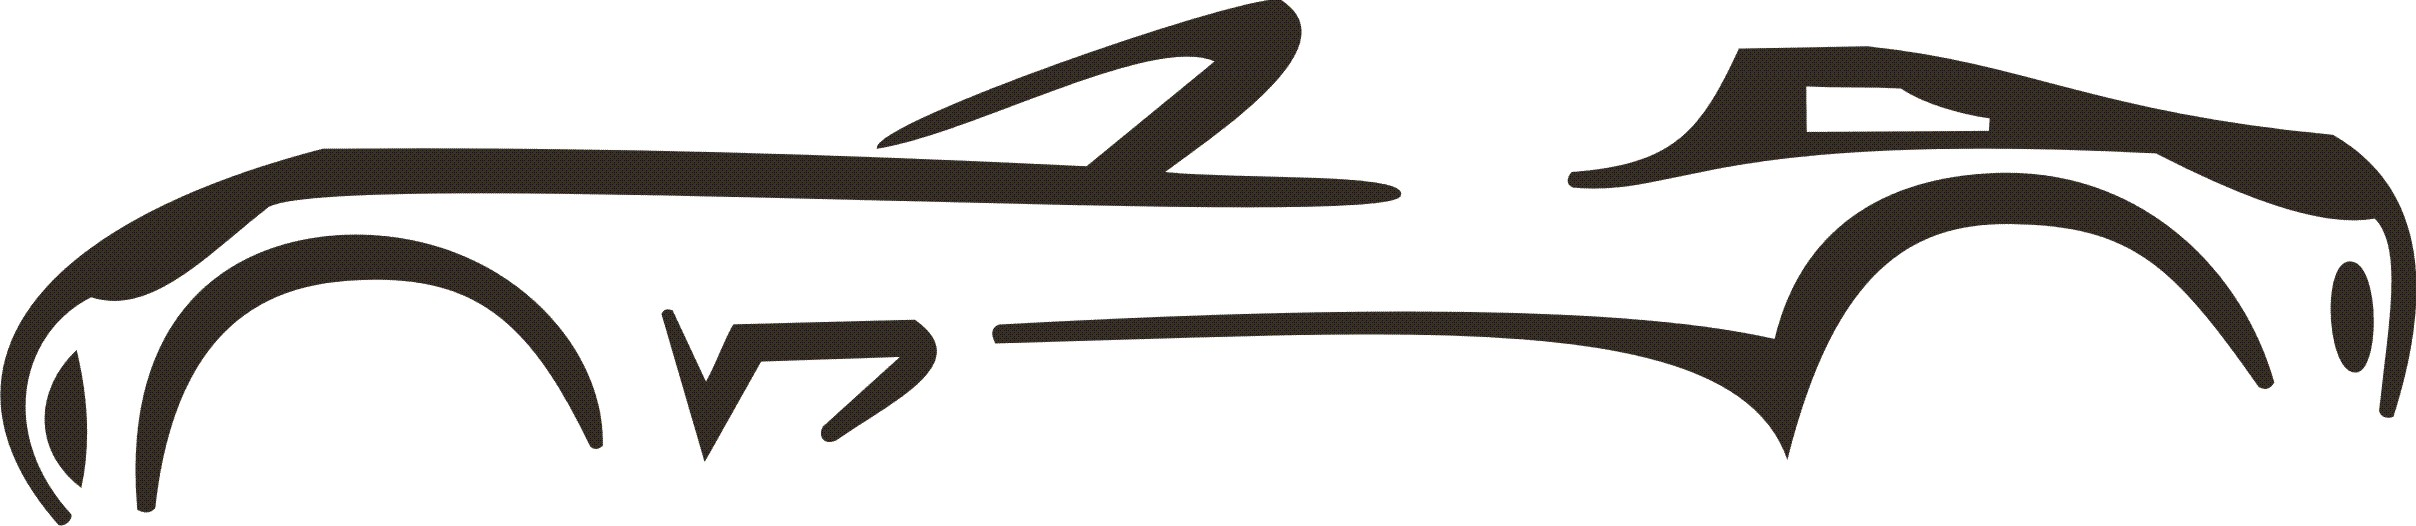 2416x526 Simple Side Of Car Silhouette Clipart By Z Car Cliparts